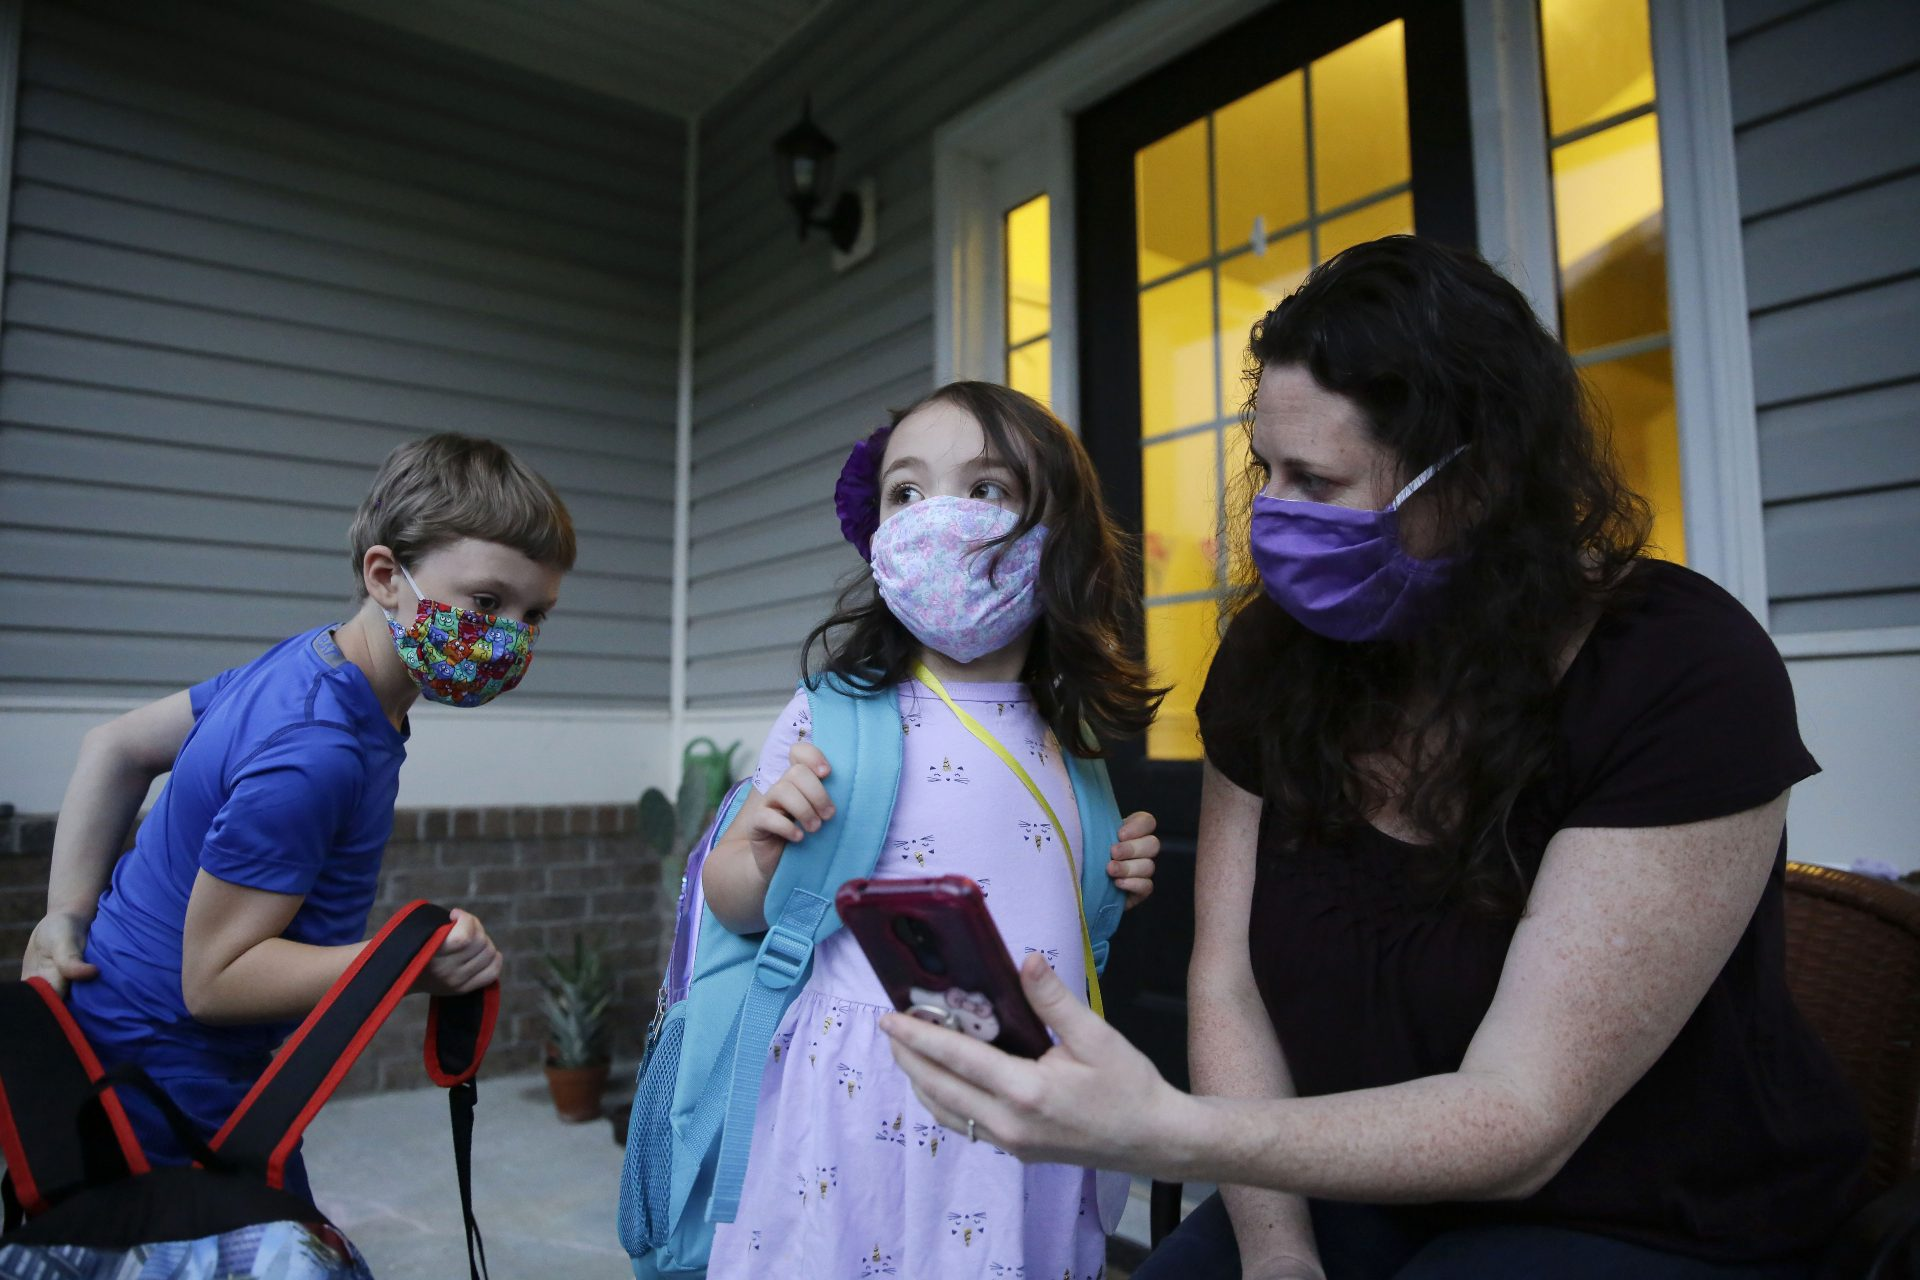 Rachel Adamus, right, shows her children, Paul, left, and Neva, 5, center, an app on her phone showing when the school bus will arrive near their home, on Monday, Aug. 3, 2020, in Dallas, Ga. The Adamus children are among tens of thousands of students in Georgia and across the nation who were set to resume in-person school Monday for the first time since March.